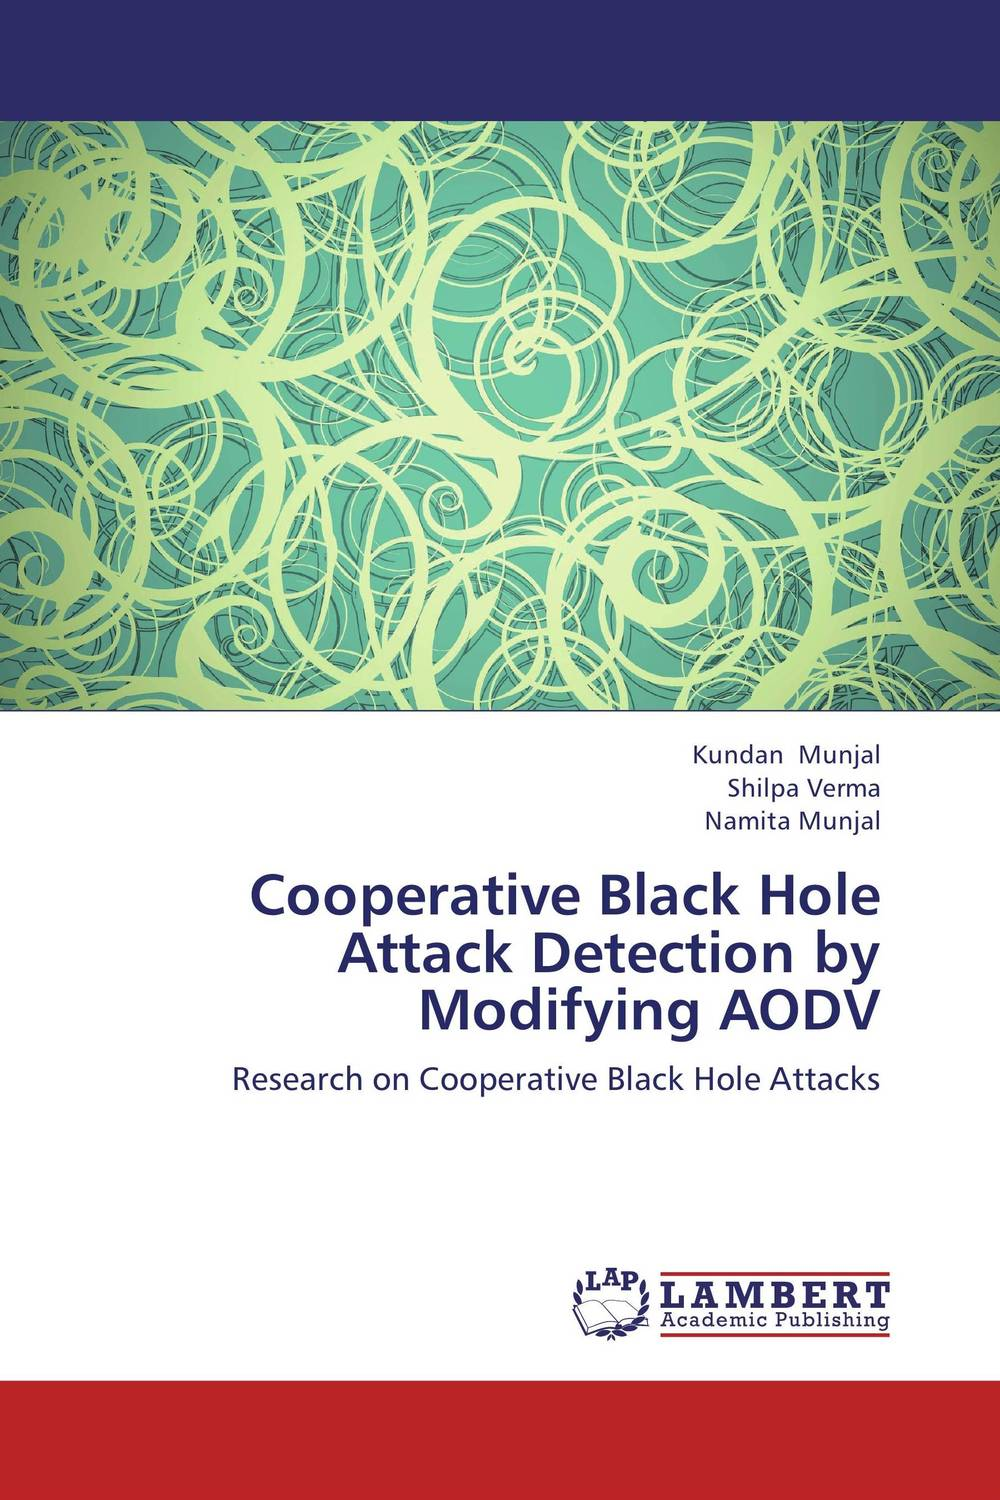 Cooperative Black Hole Attack Detection by Modifying AODV phishing attacks and detection